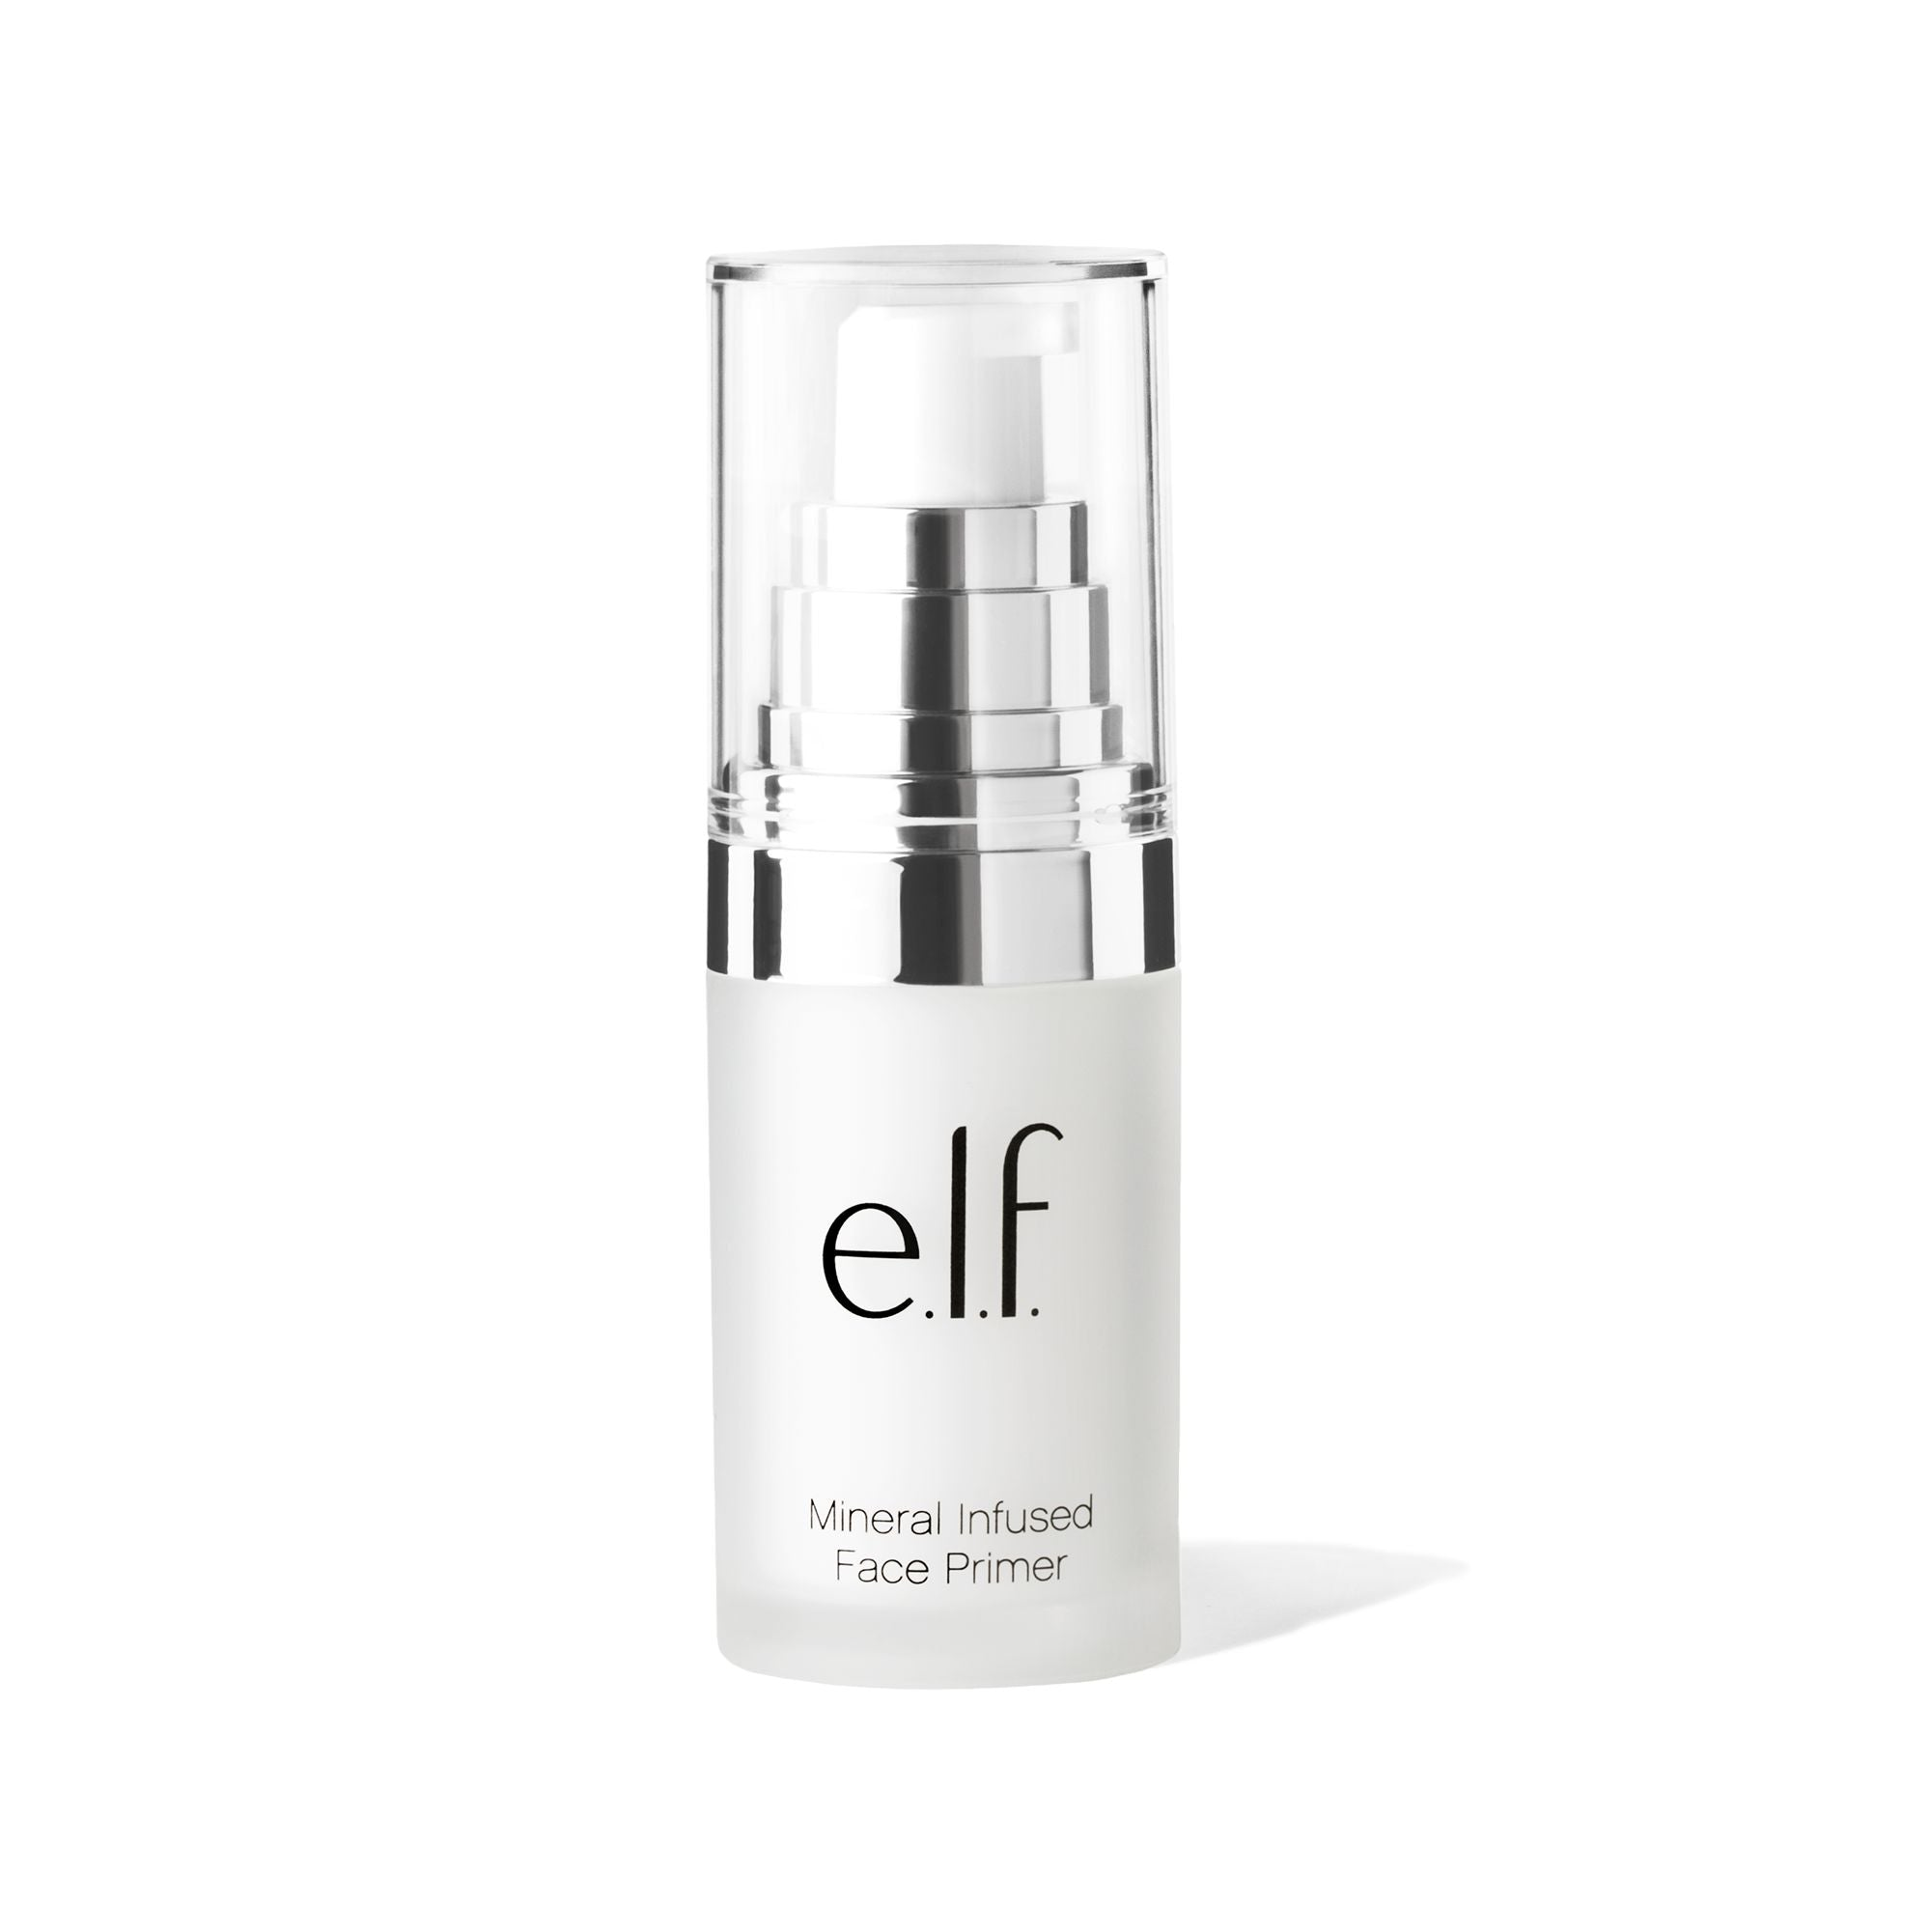 Mineral infused face primer small mineral infused face primer small elf cosmetics australia solutioingenieria Choice Image